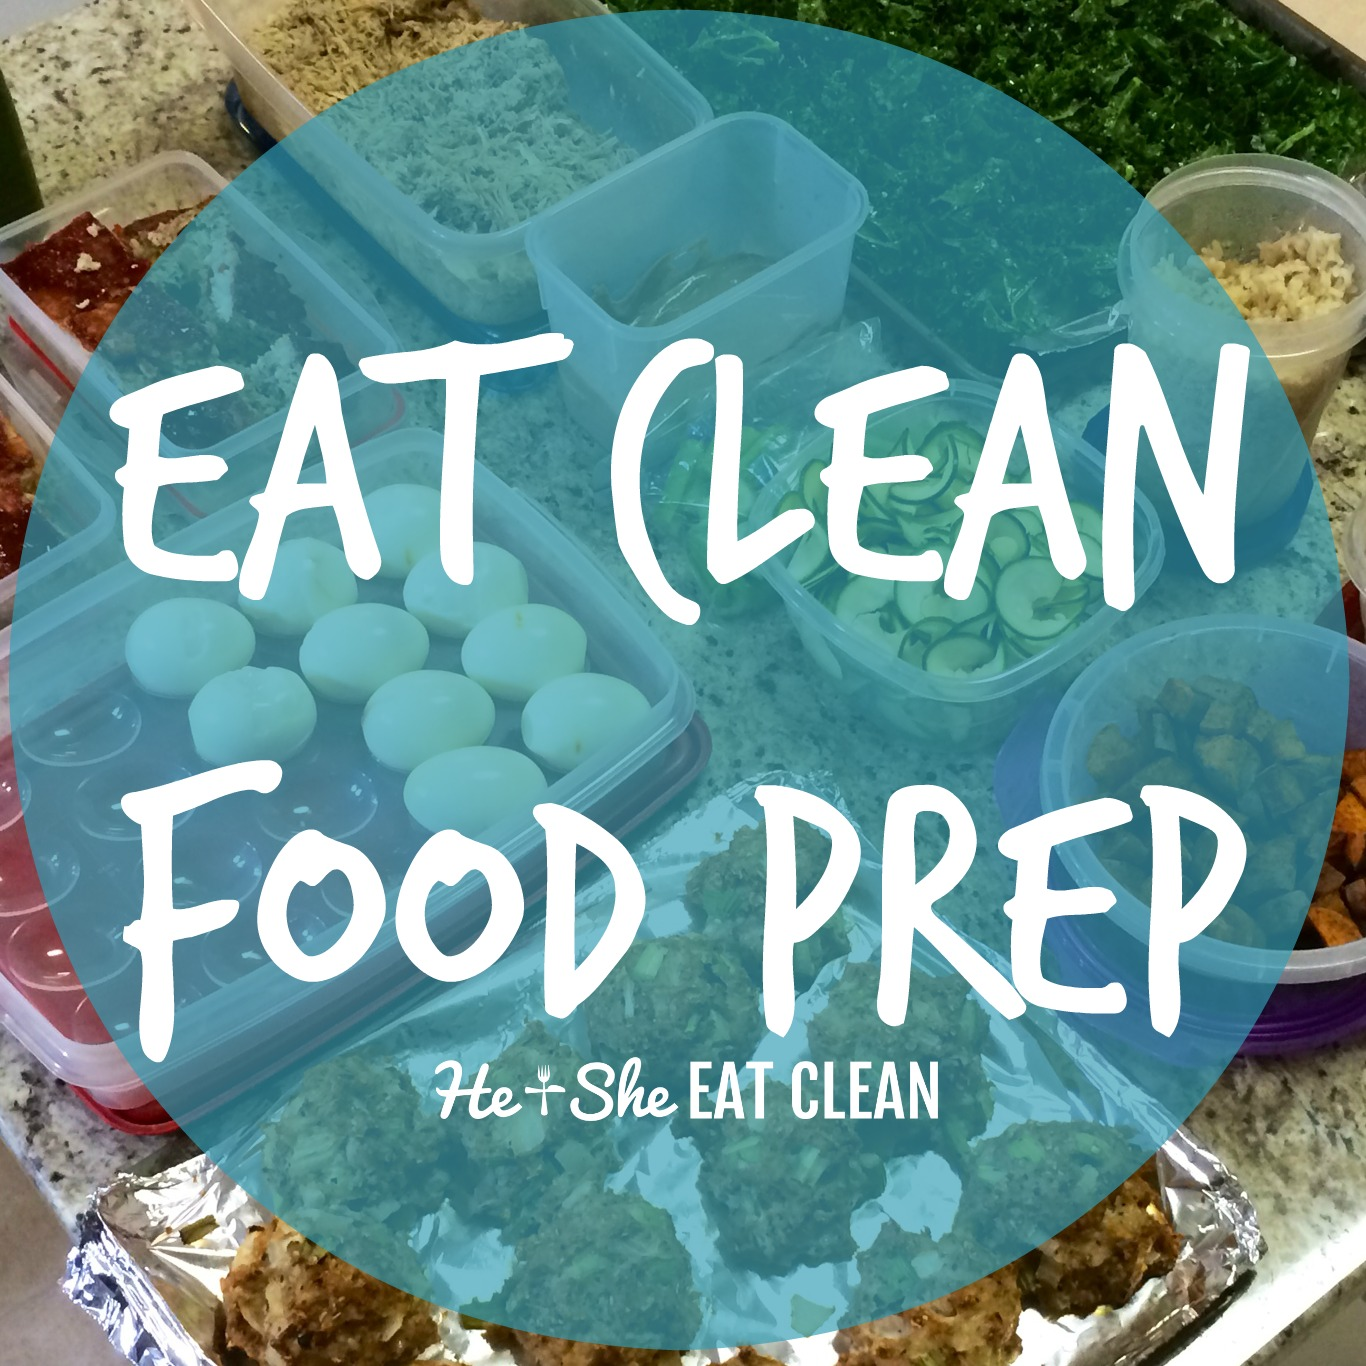 Eat Clean Food Prep Inspiration!